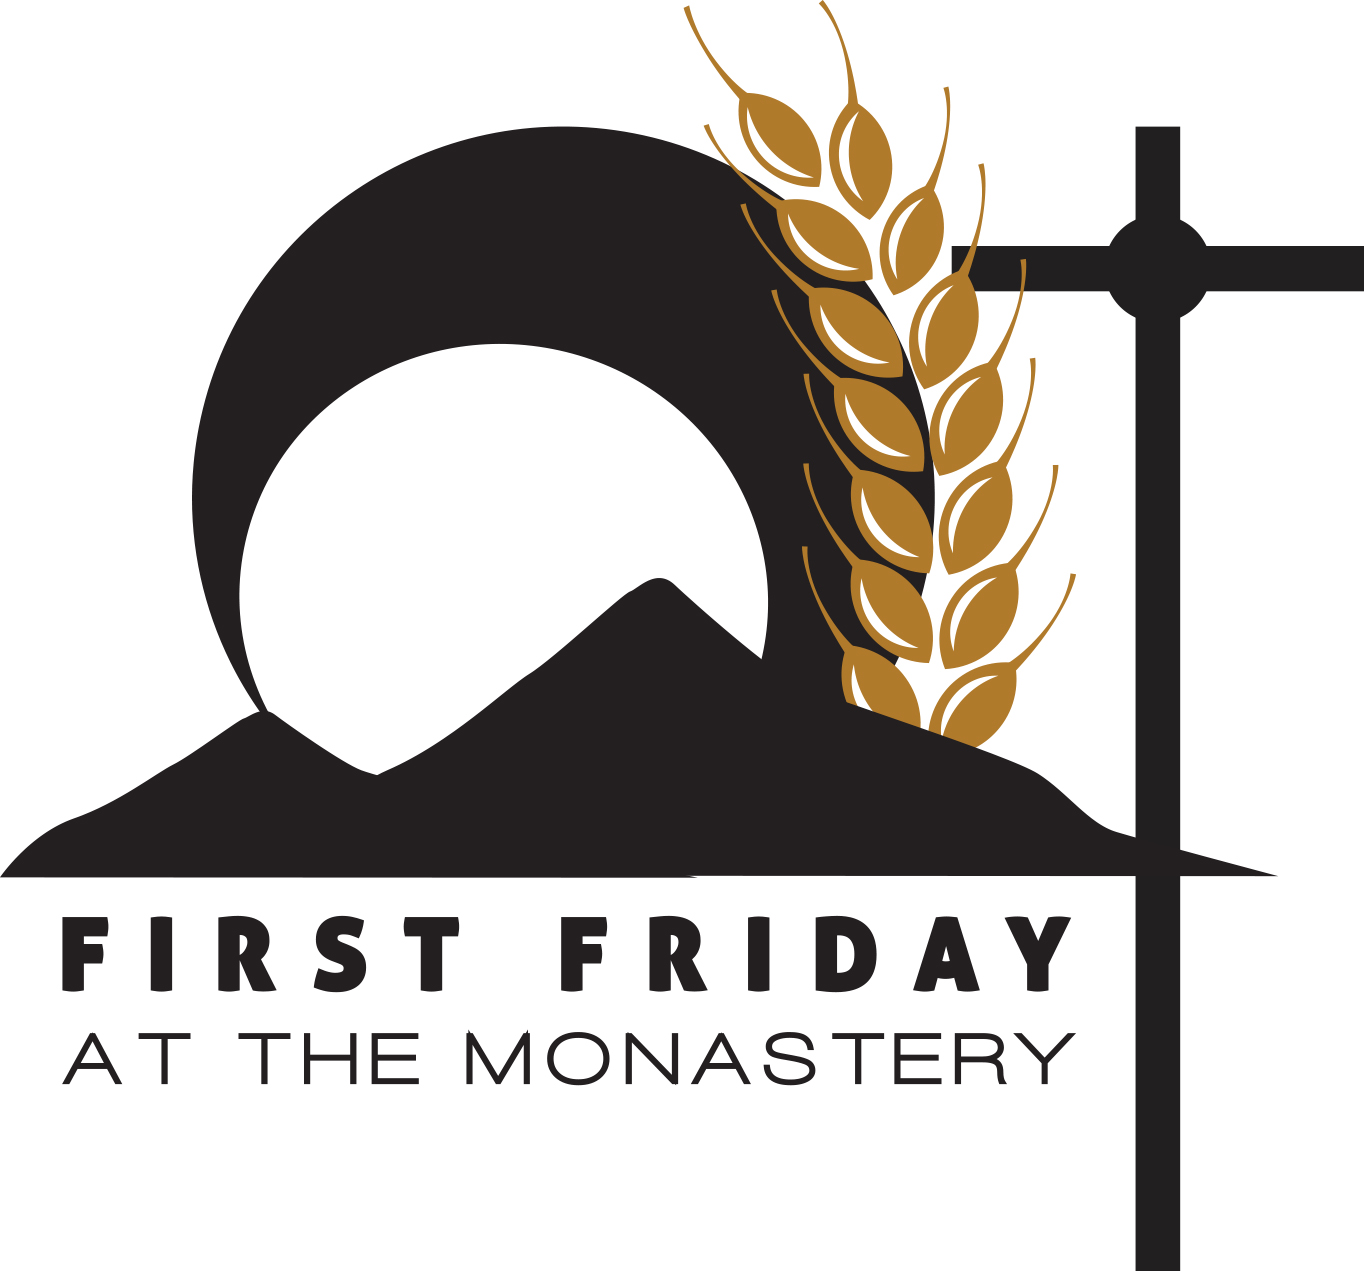 First Friday at the Monastery - OCTOBER